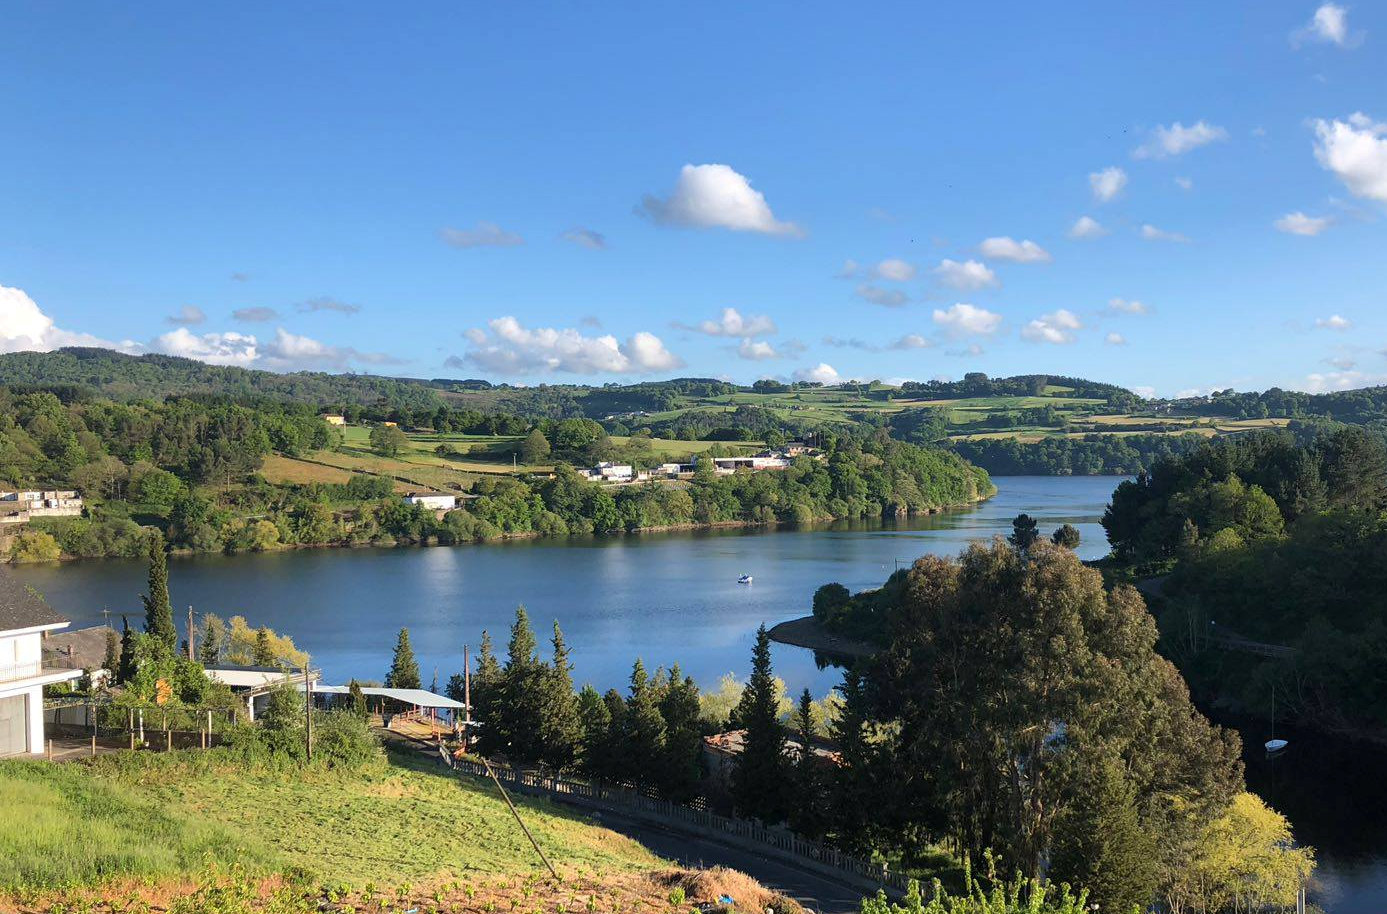 View of the Belesar Reservoir that now covers the original site of Portomarin. Photo: © Authentic Journeys.